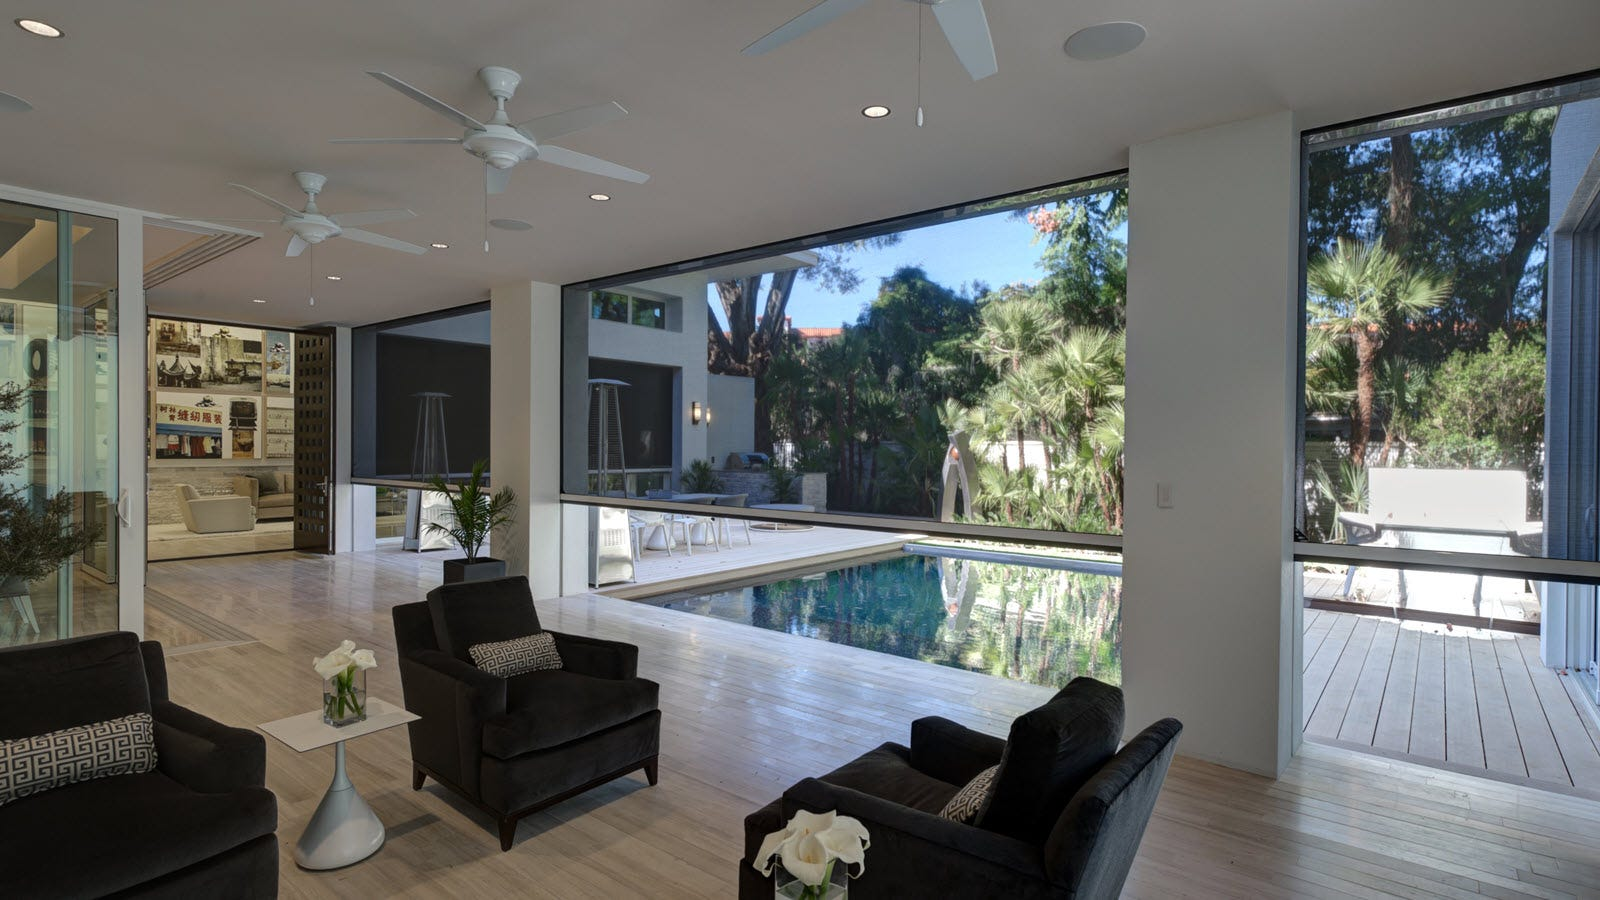 A section of home with retractable porch shades covering where walls would normally be.